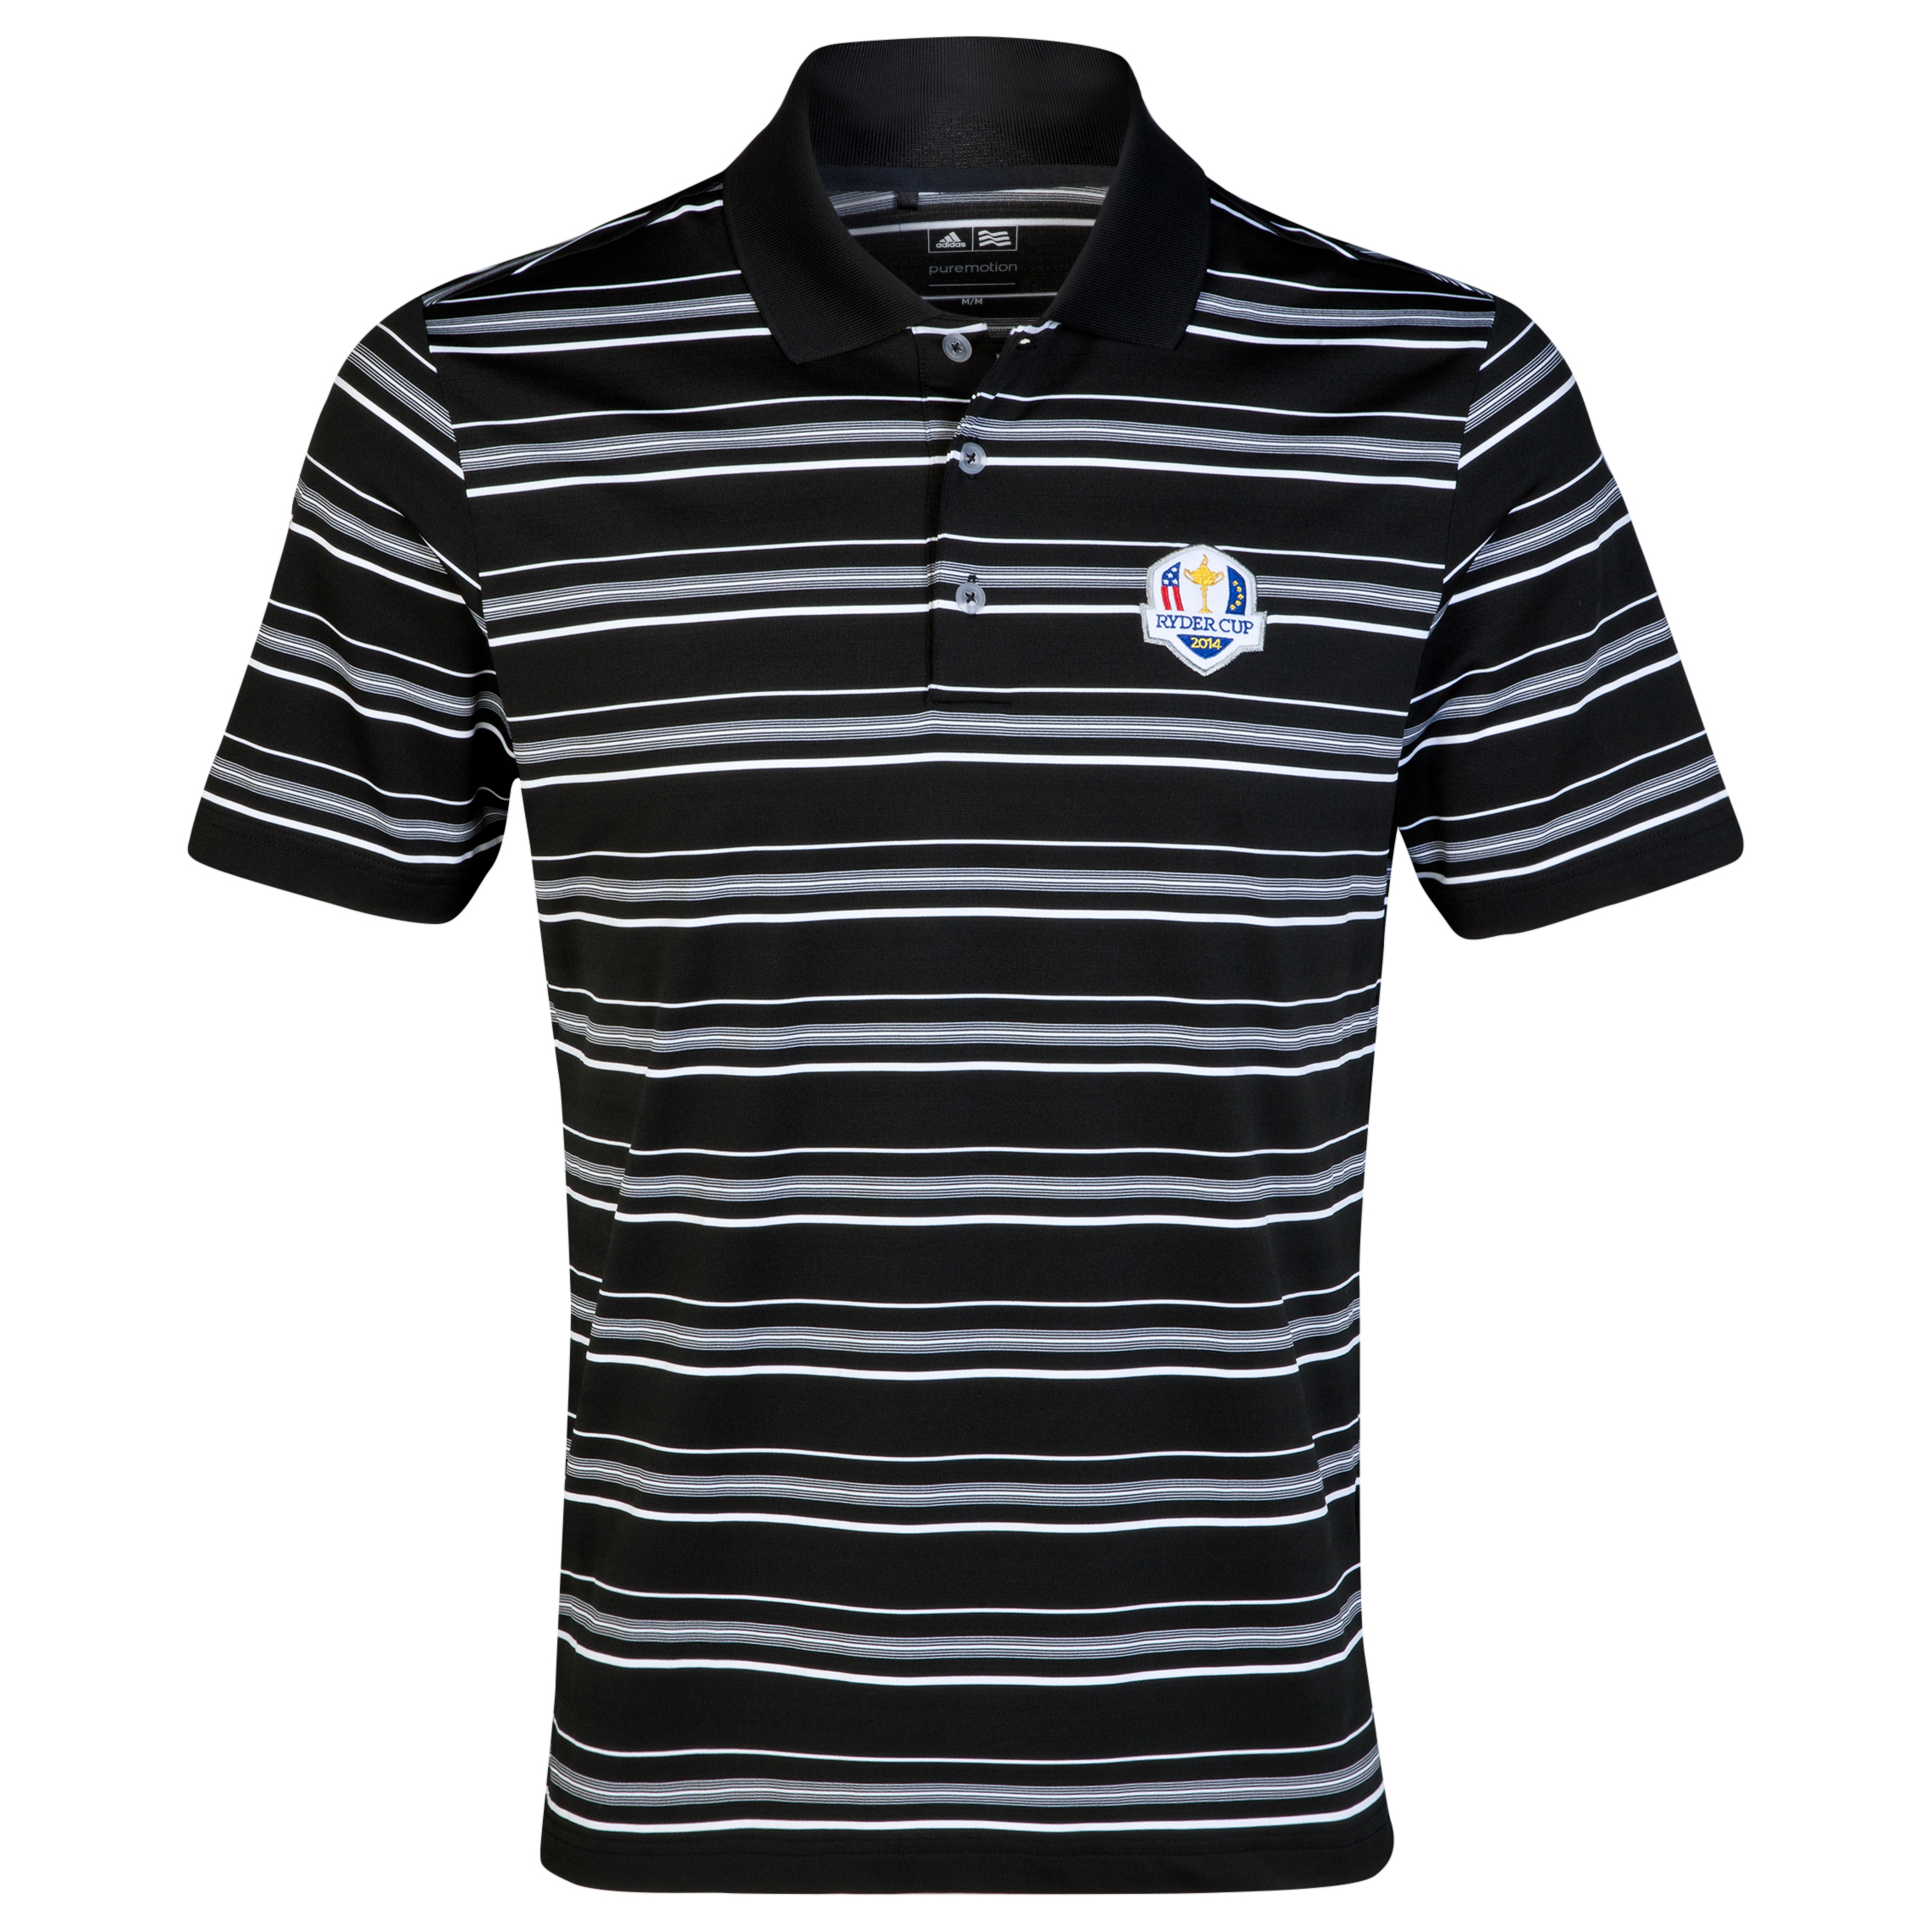 The 2014 Ryder Cup ClimaLite 2-Colour Stripe Polo Black